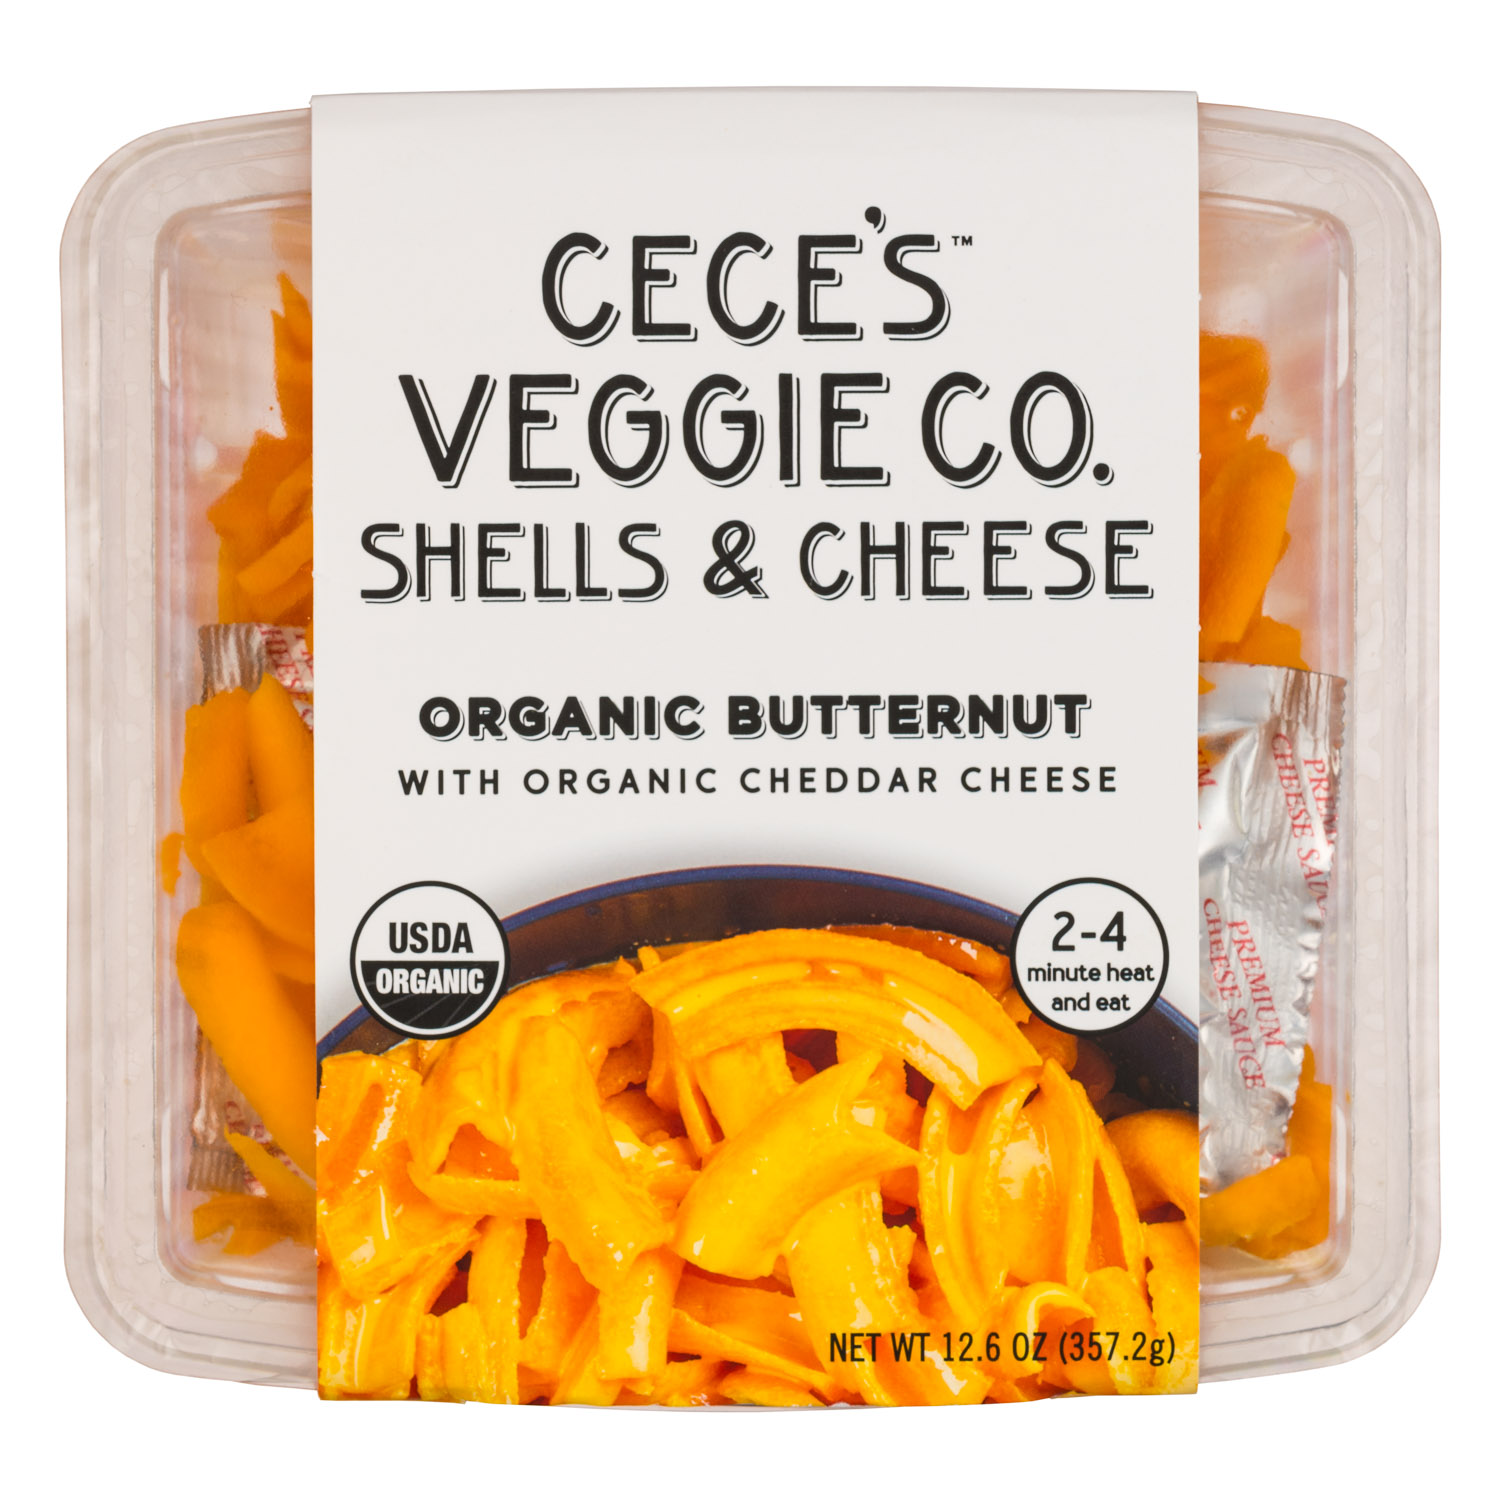 Organic Butternut with Organic Cheddar Cheese